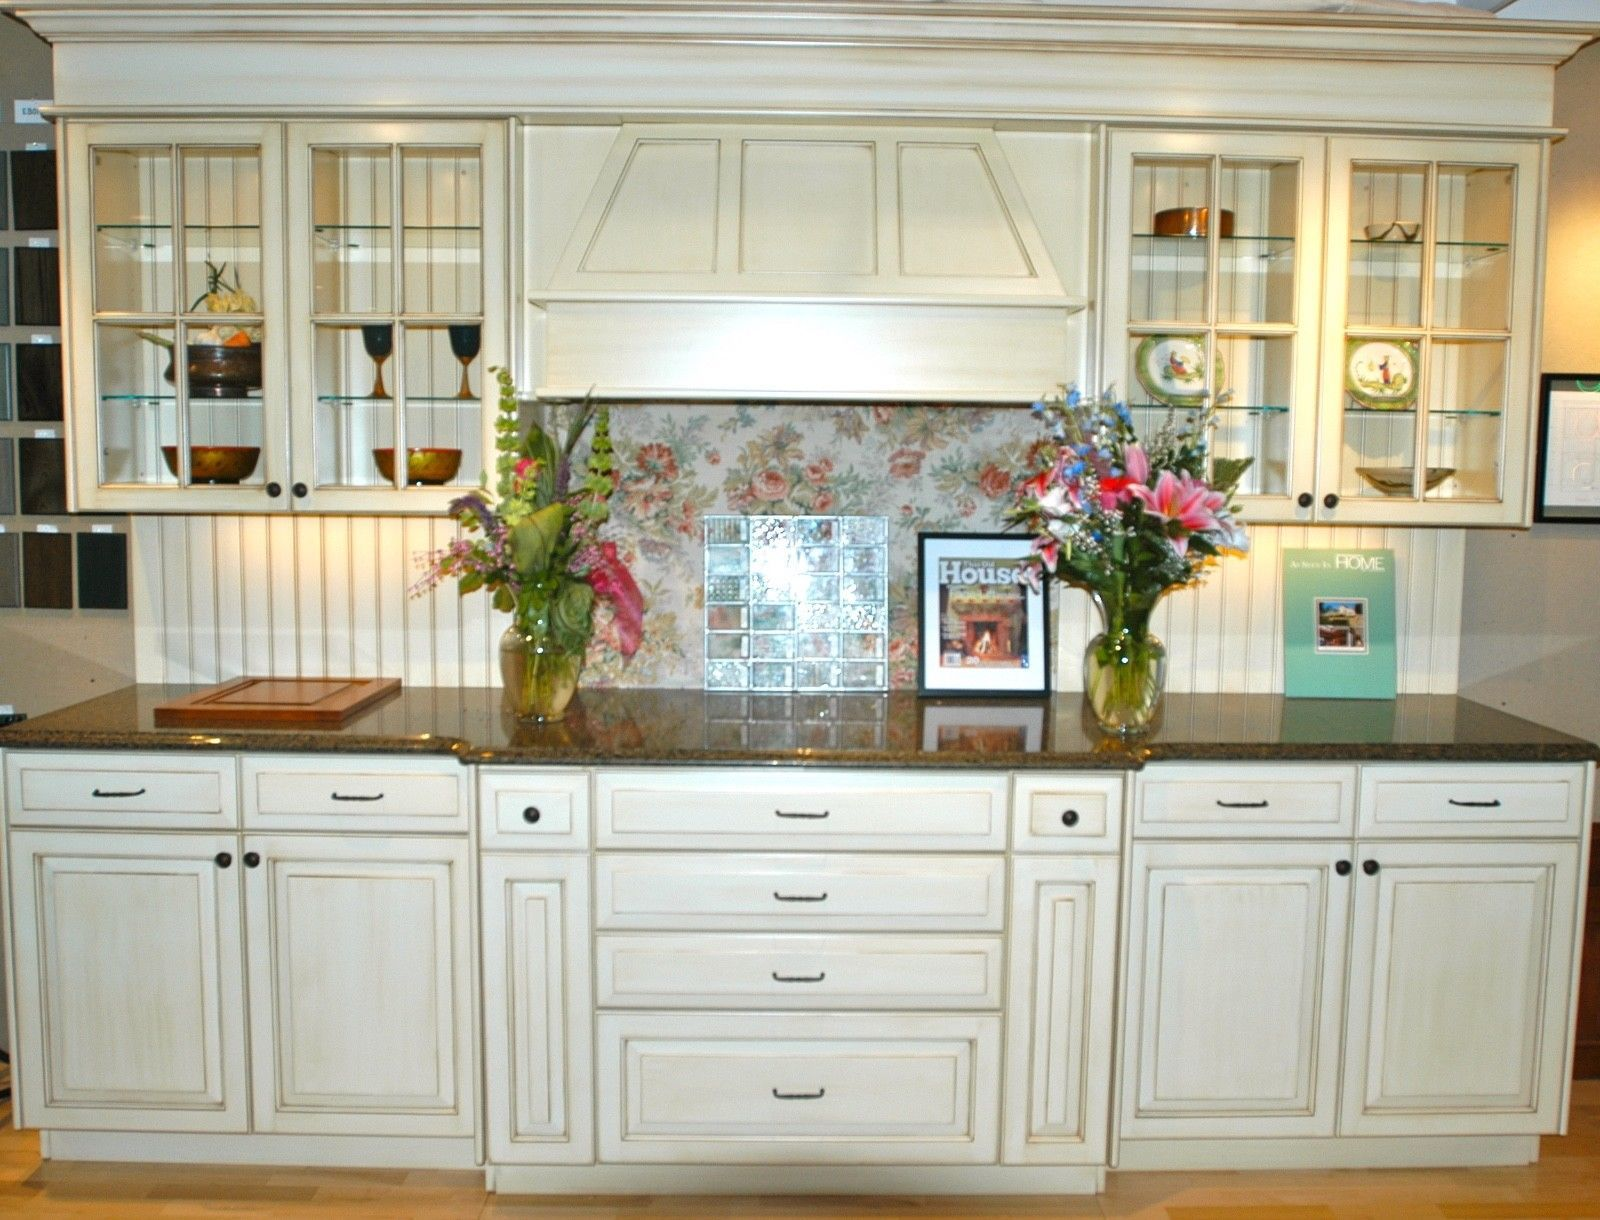 Antique White Kitchen Cabinets Custom Made 10 039 X 8 039 Wood Cabinets Kitchen Cabinets Antique White Kitchen Cabinets Antique White Kitchen